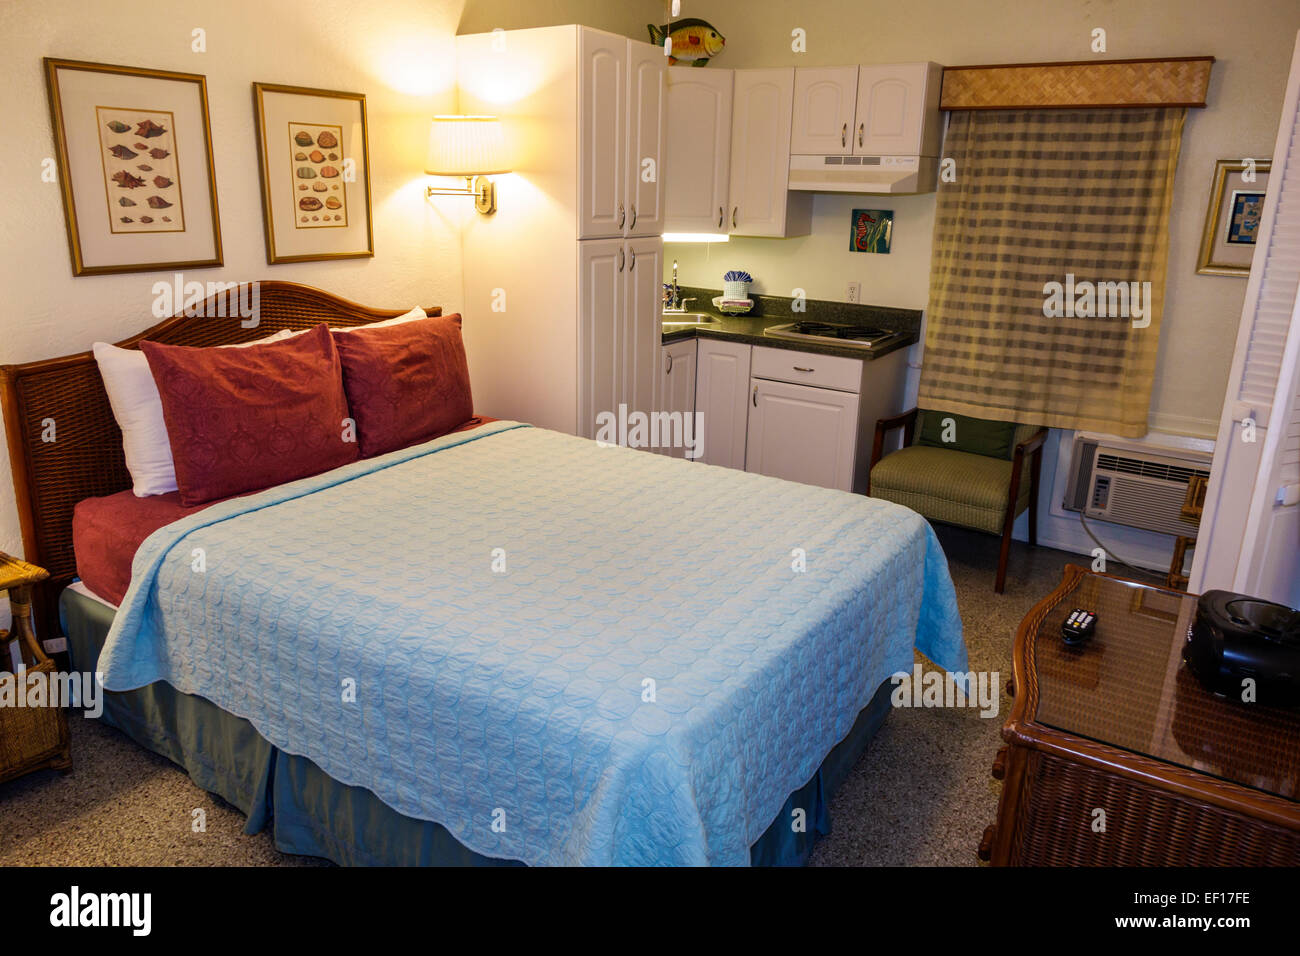 Hollywood Florida The Desoto Oceanview Inn motel hotel guest room king-size bed - Stock Image